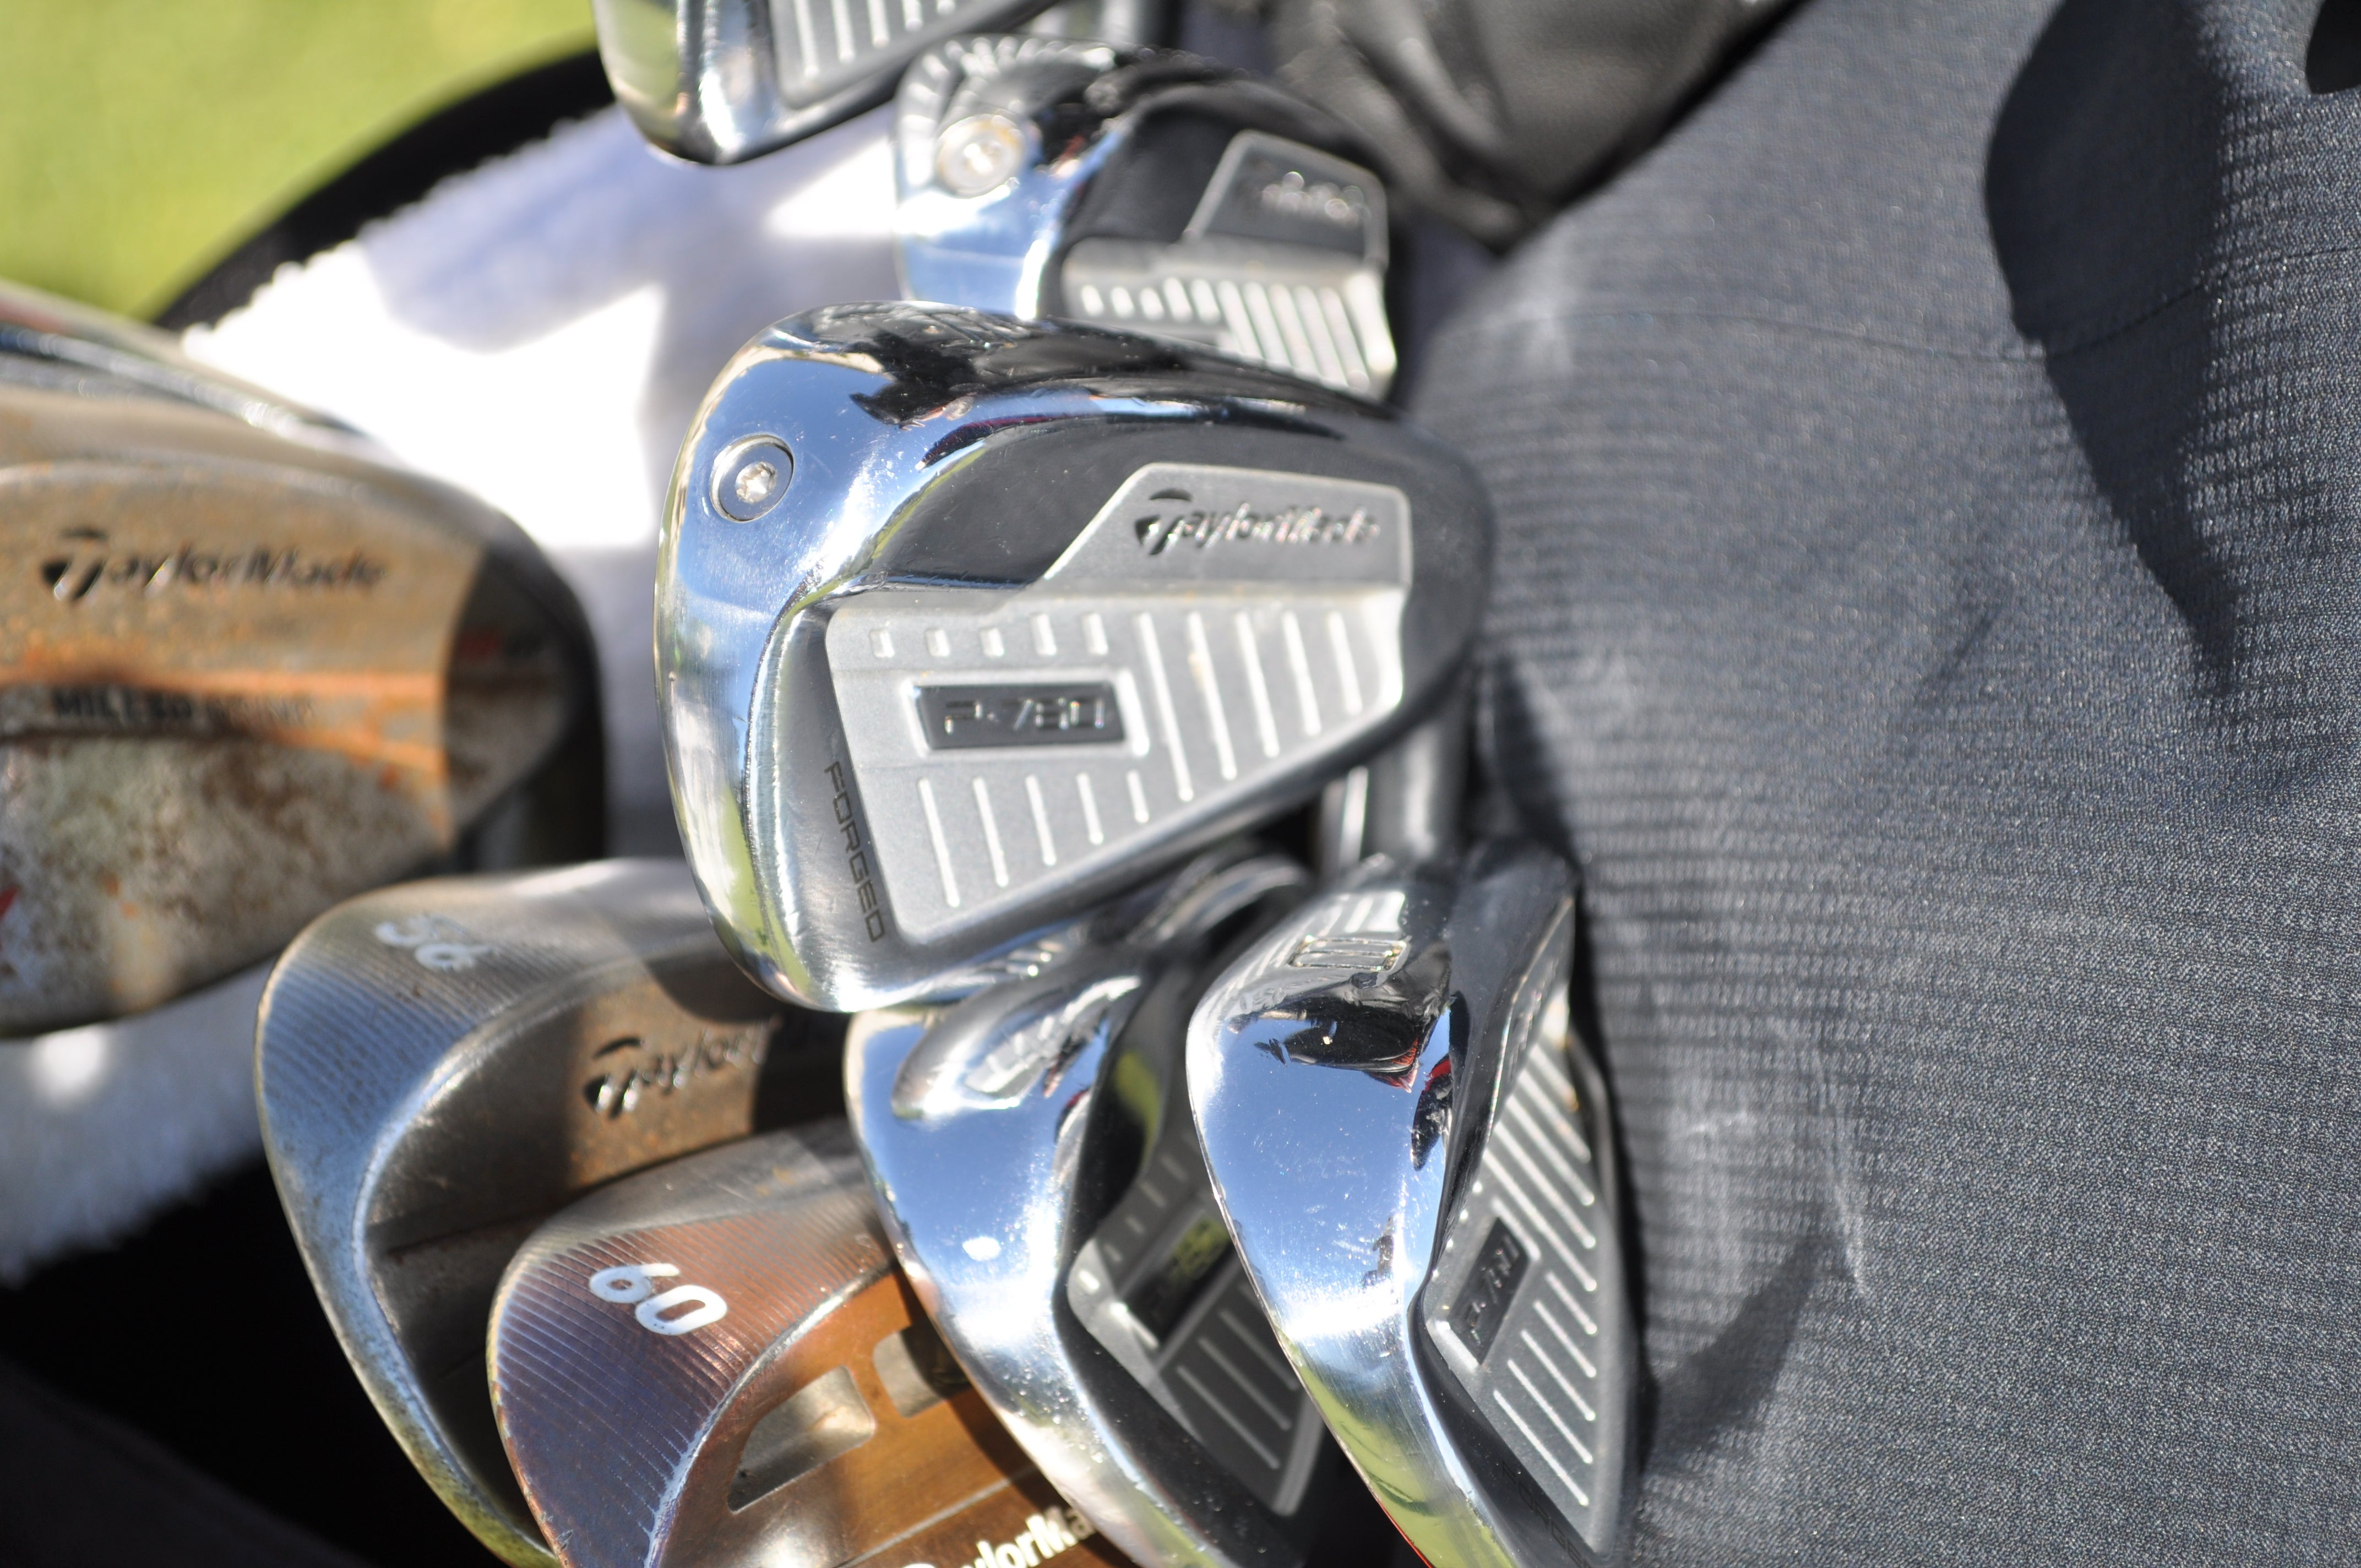 Desert Classic winner Adam Long has a full set of TaylorMade P760 irons in the bag.